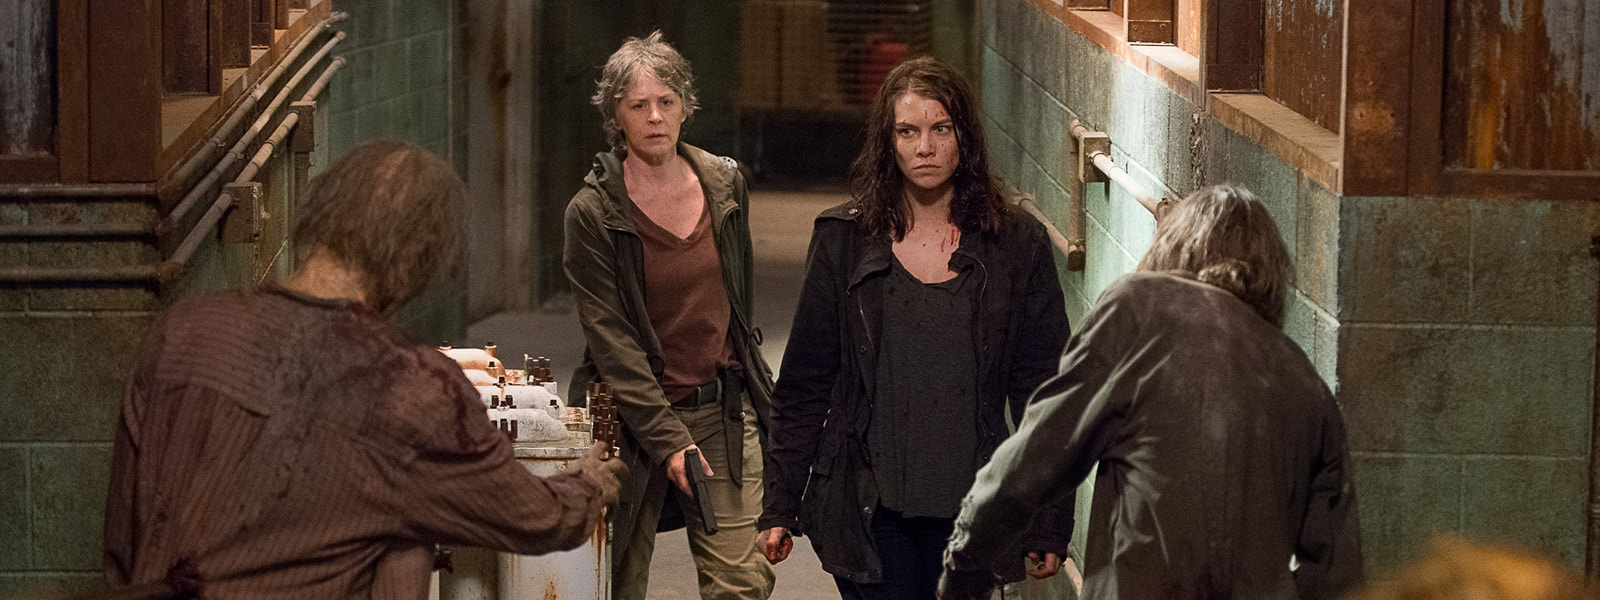 the-walking-dead-episode-613-carol-mcbride-maggie-cohan-post-800×600